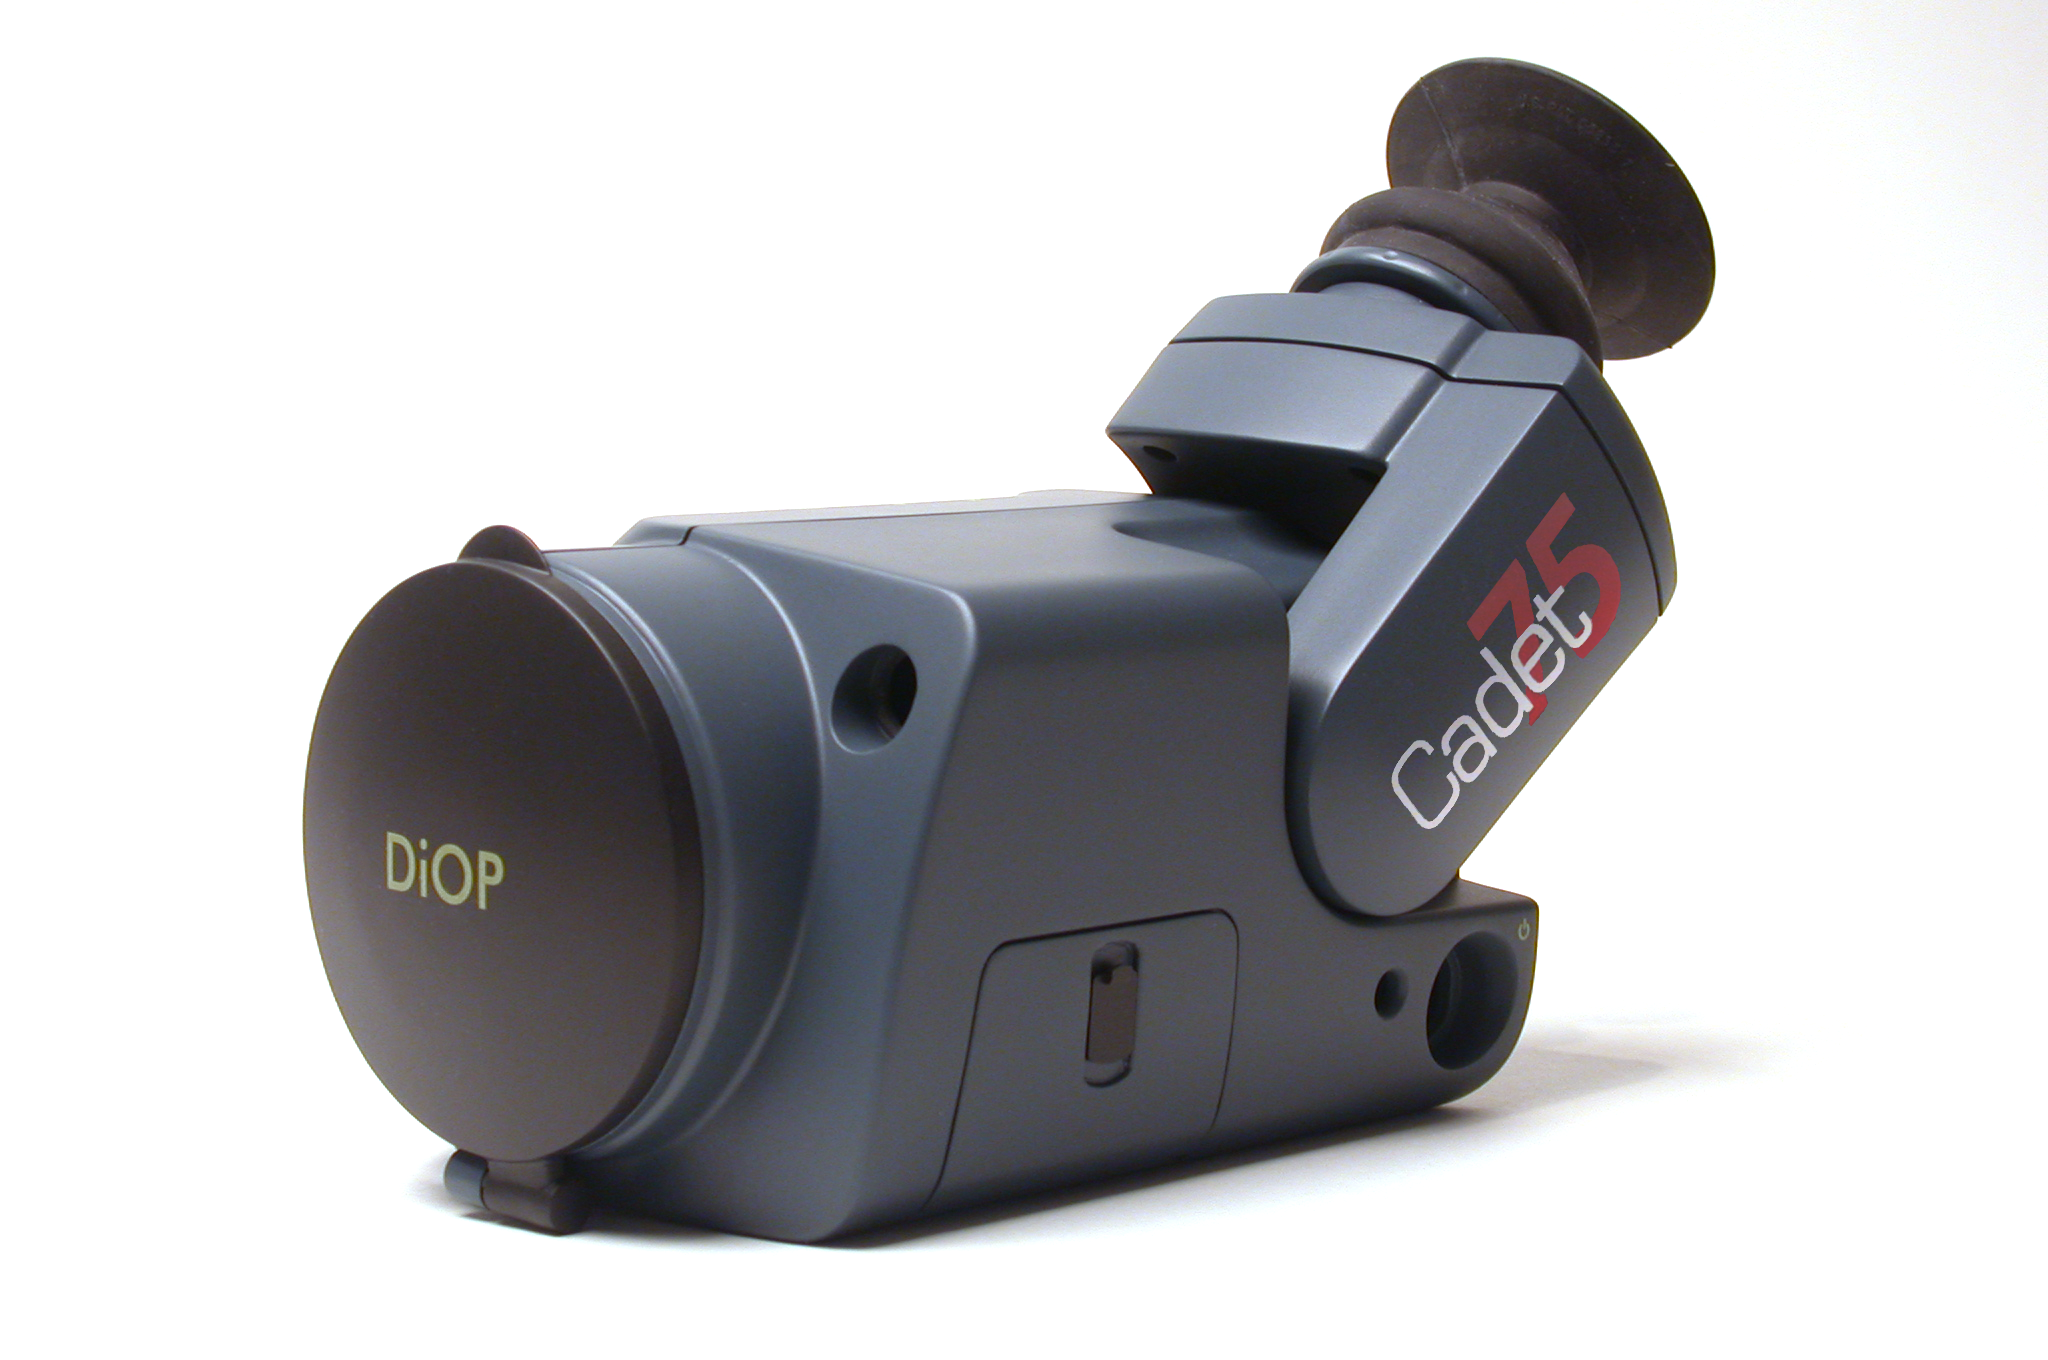 DiOP Cadet75 Thermal Imager